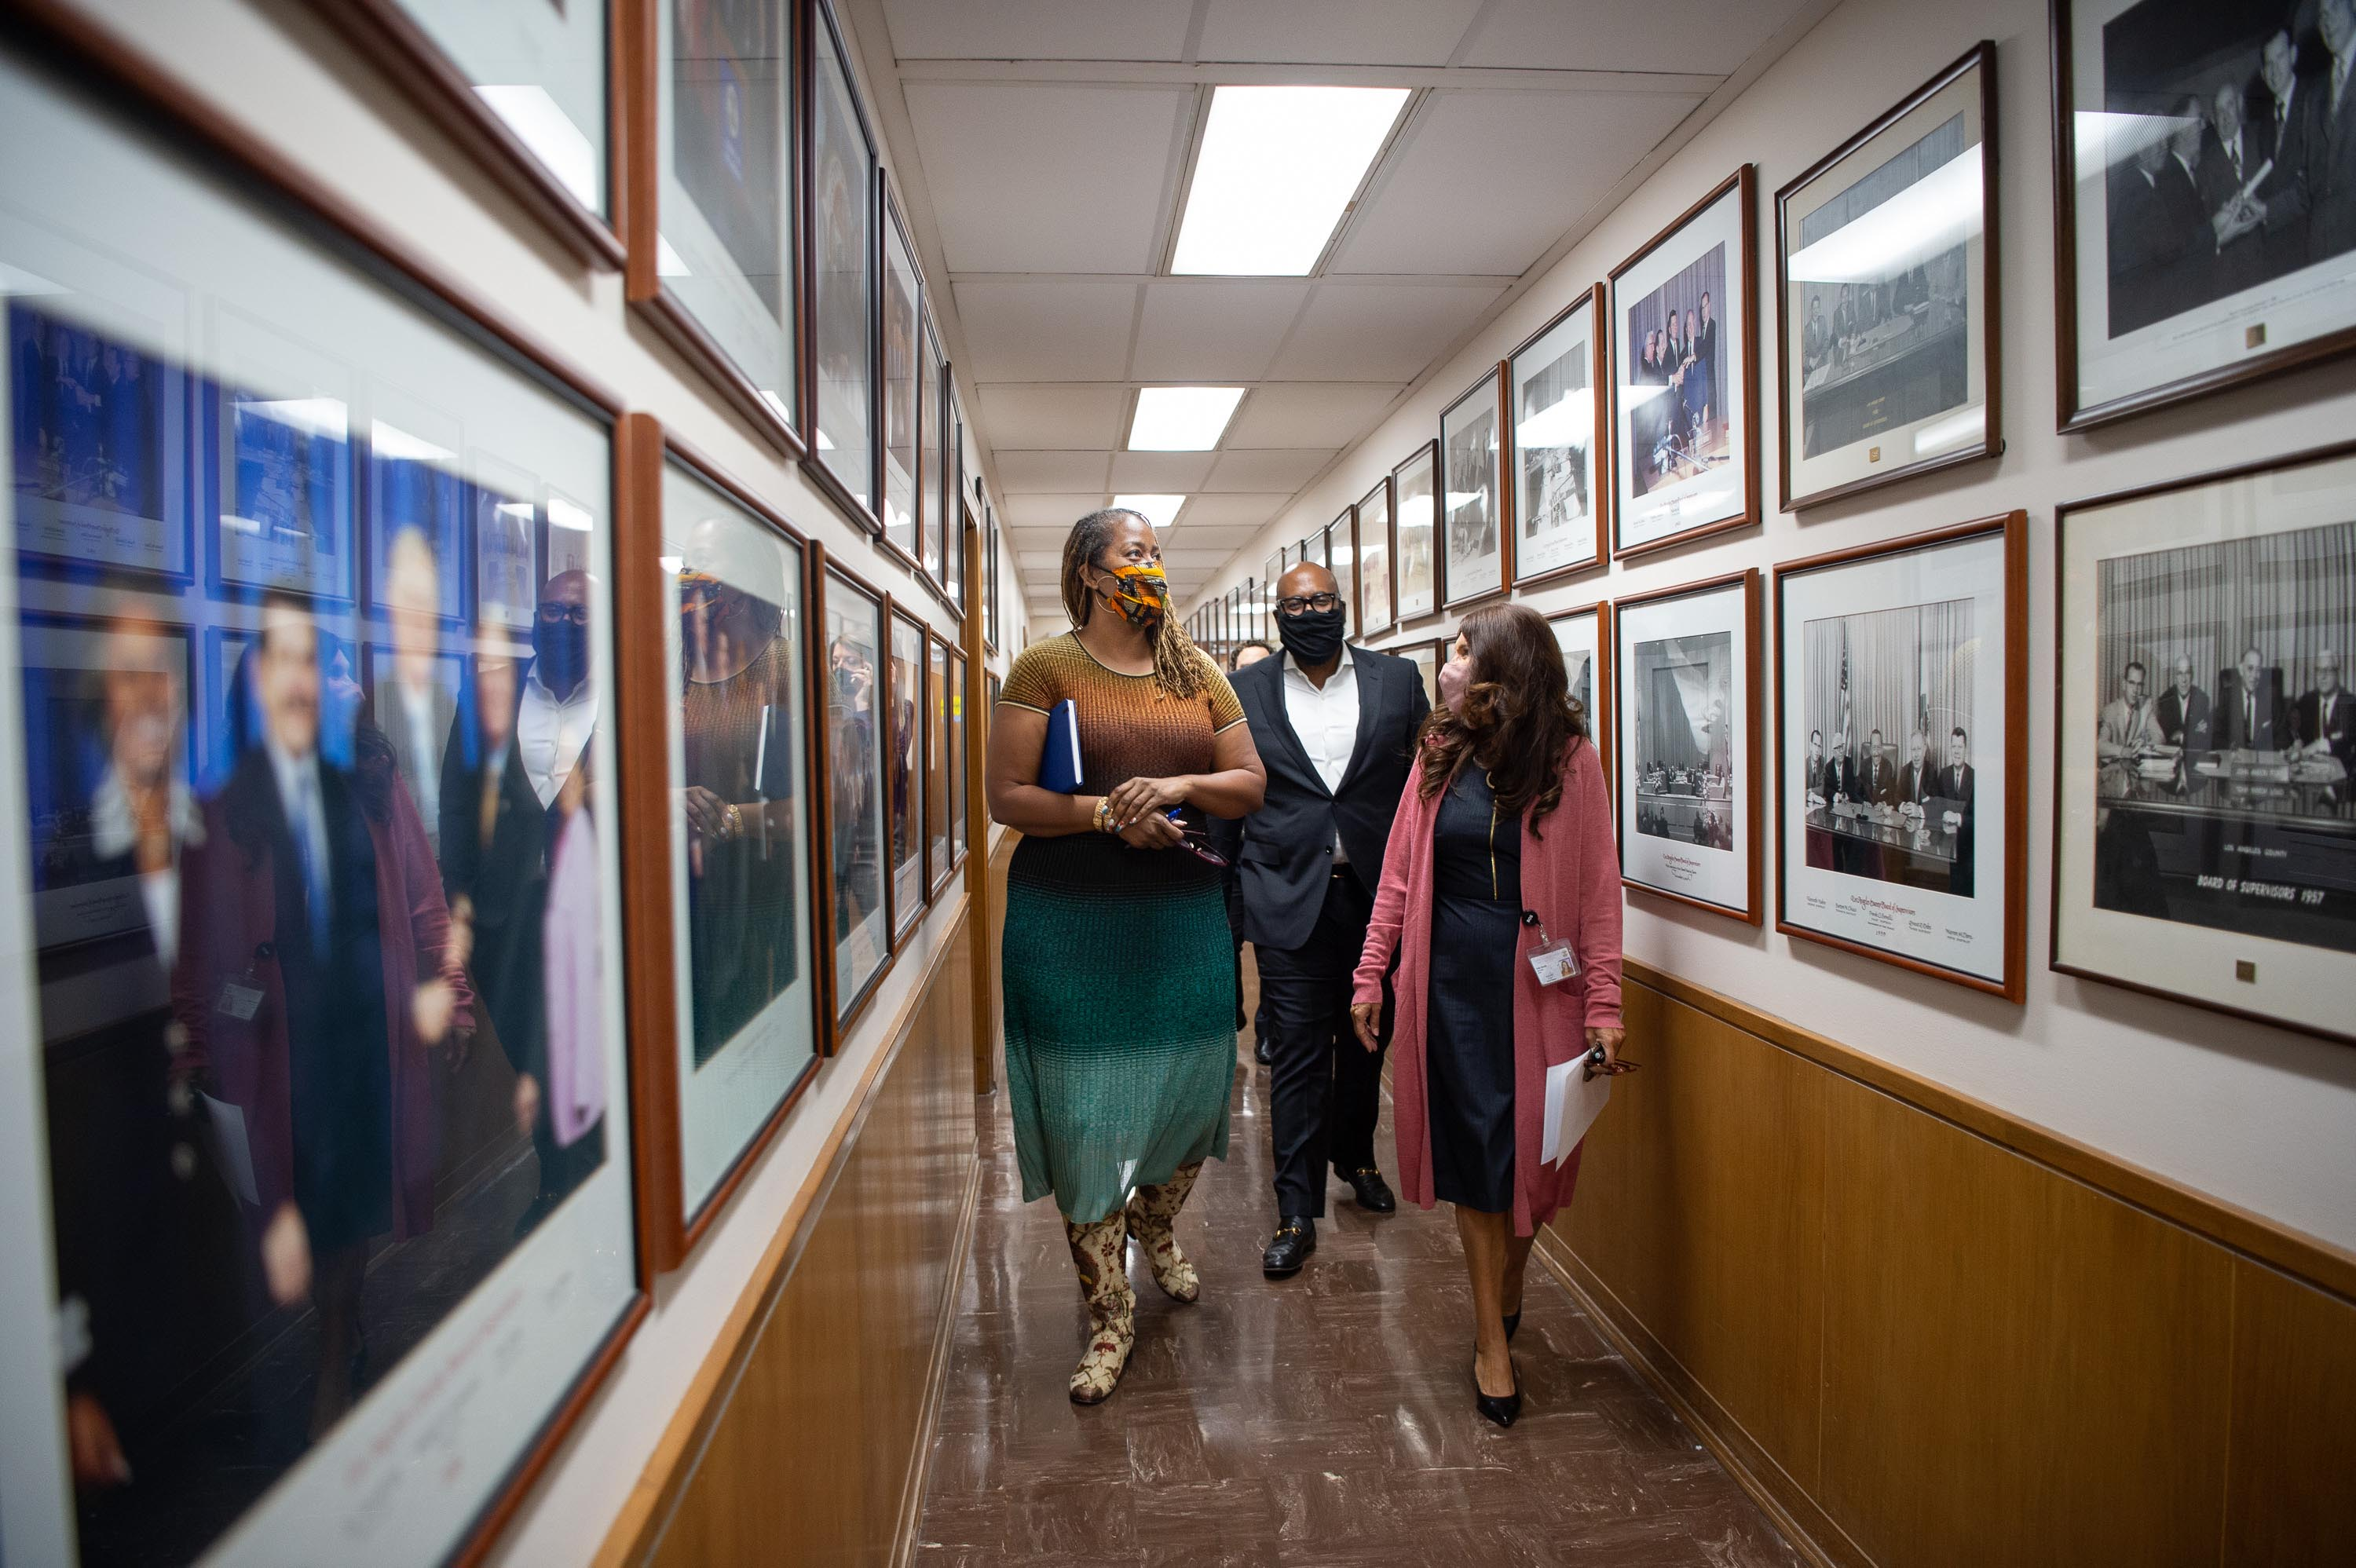 Executive Office<br>  <b>Nov. 16, 2020 – Supervisor-Elect Holly J. Mitchell's welcome to the Kenneth Hahn Hall of Administration.</b><br>  <i>Photo by Bryan Chan / Board of Supervisors</i>